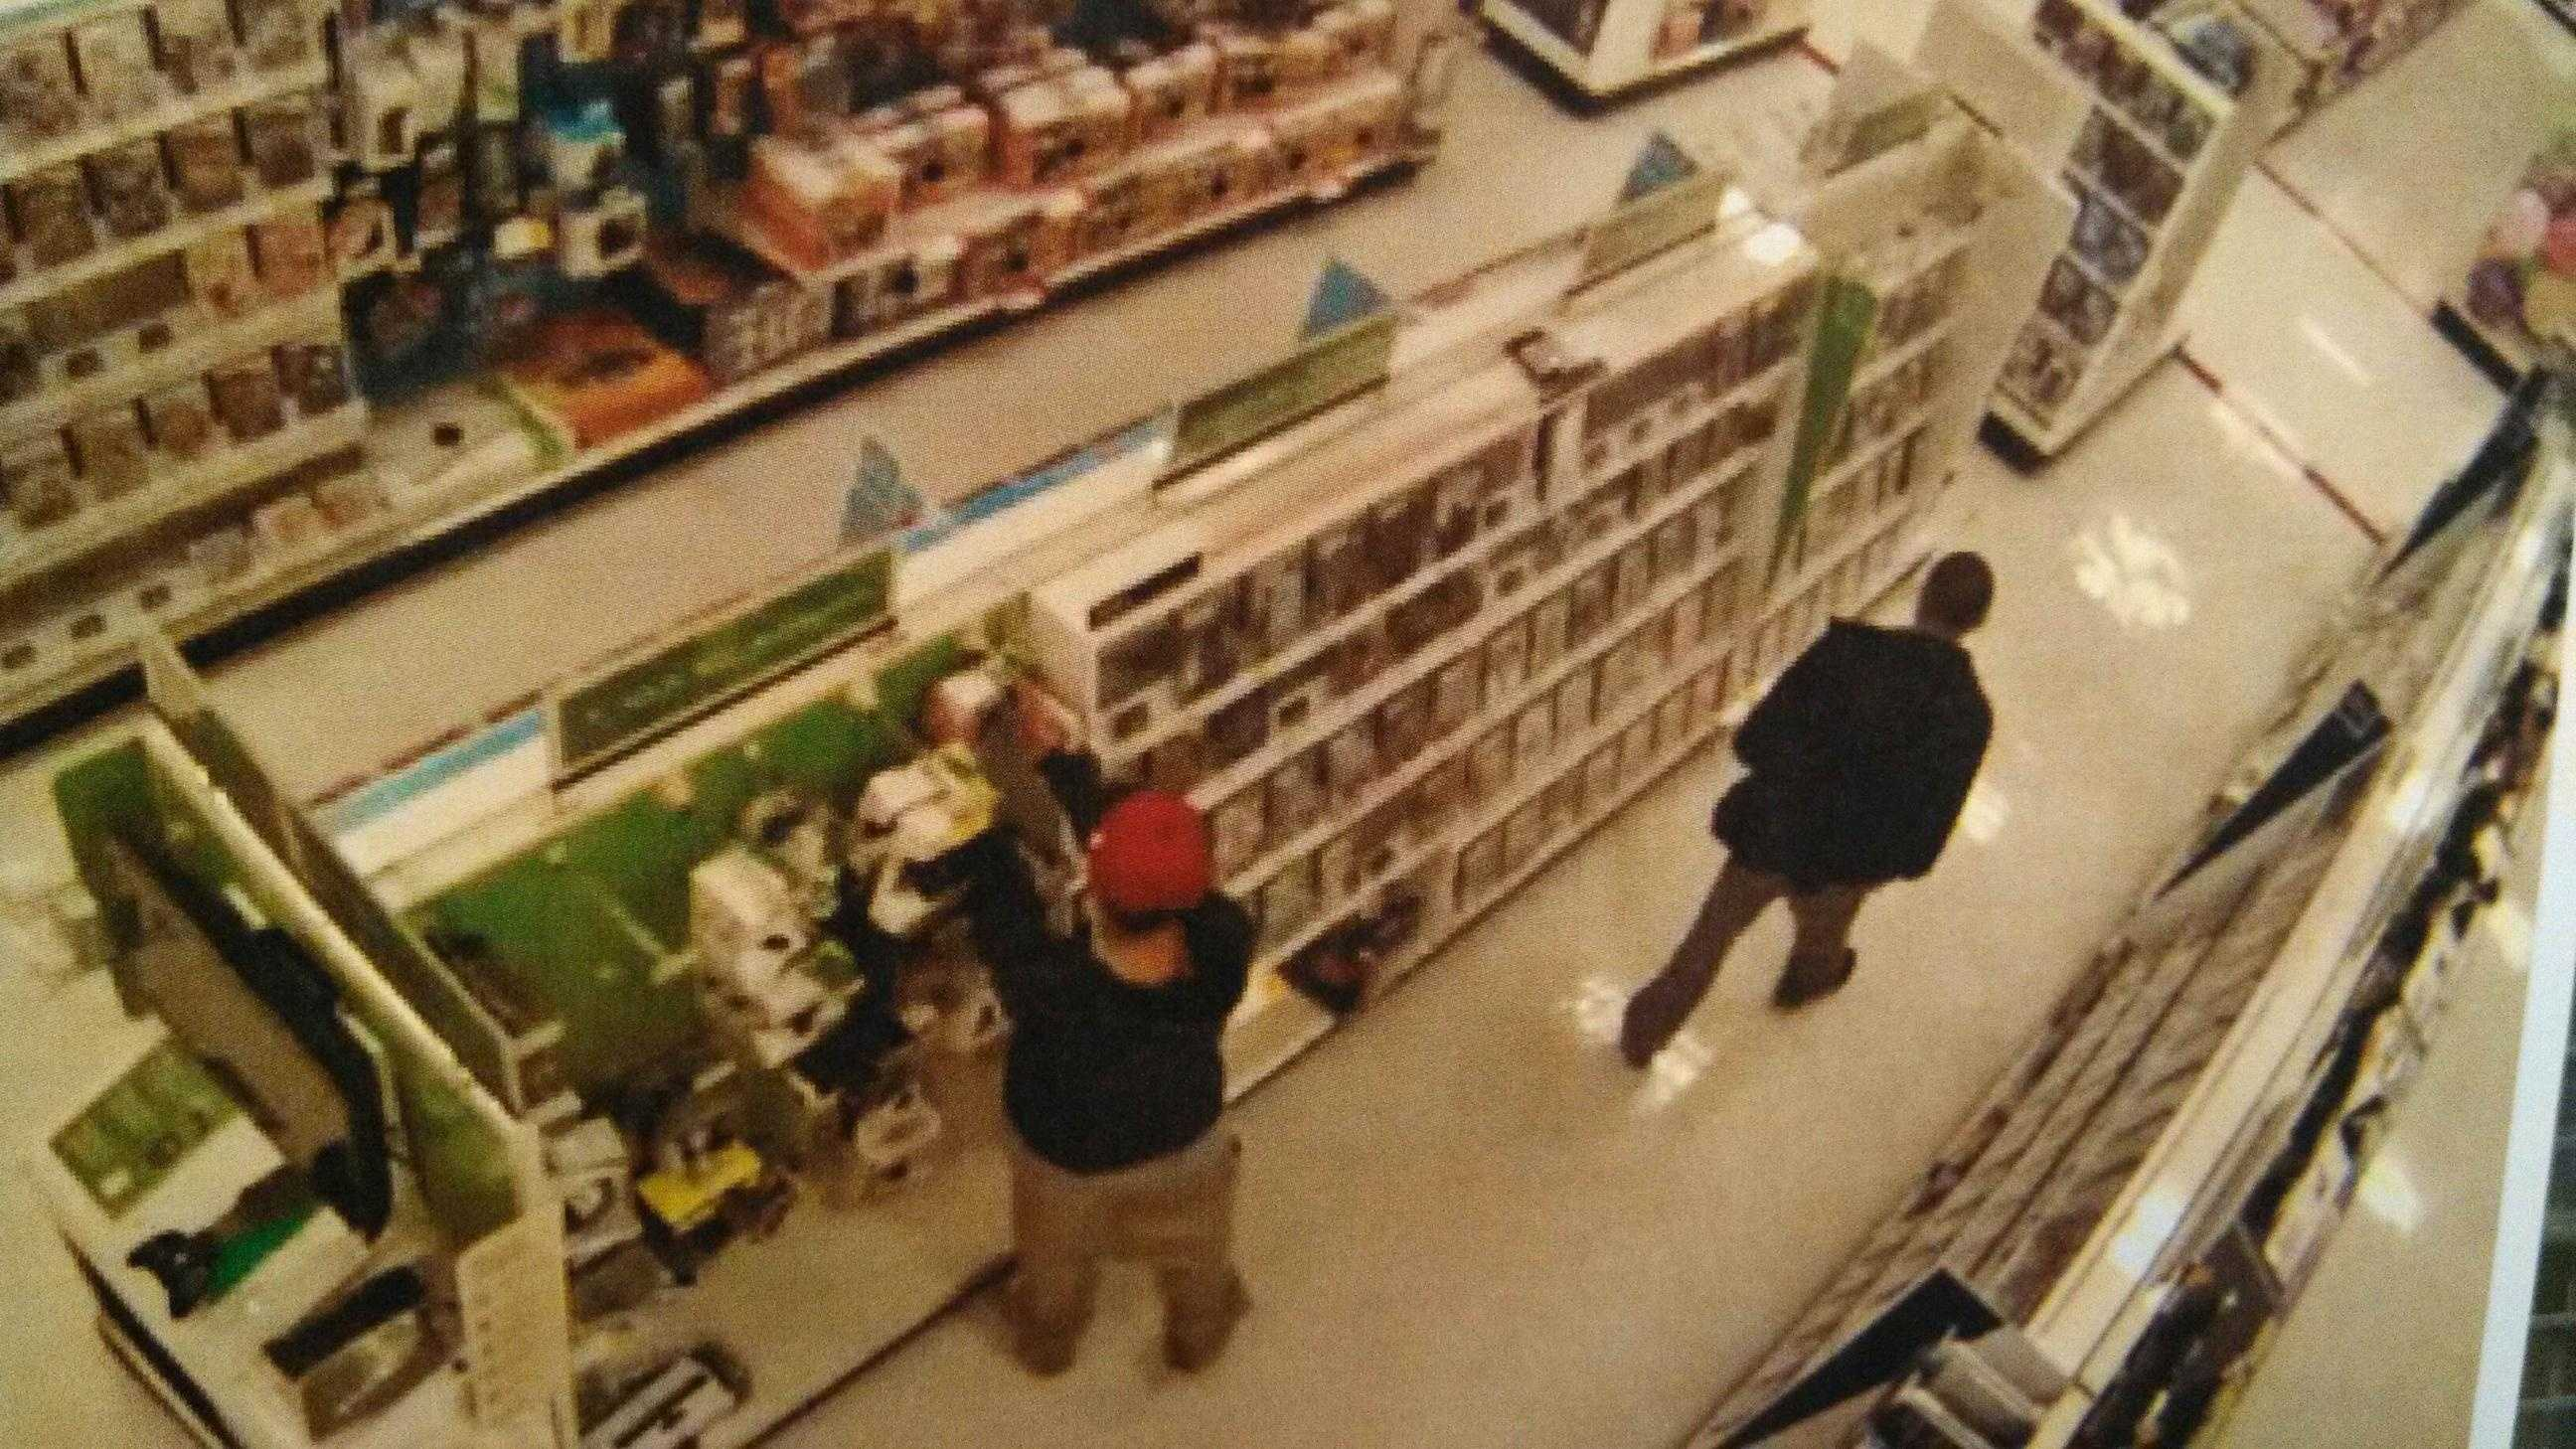 Pair steals Xbox controllers from local target